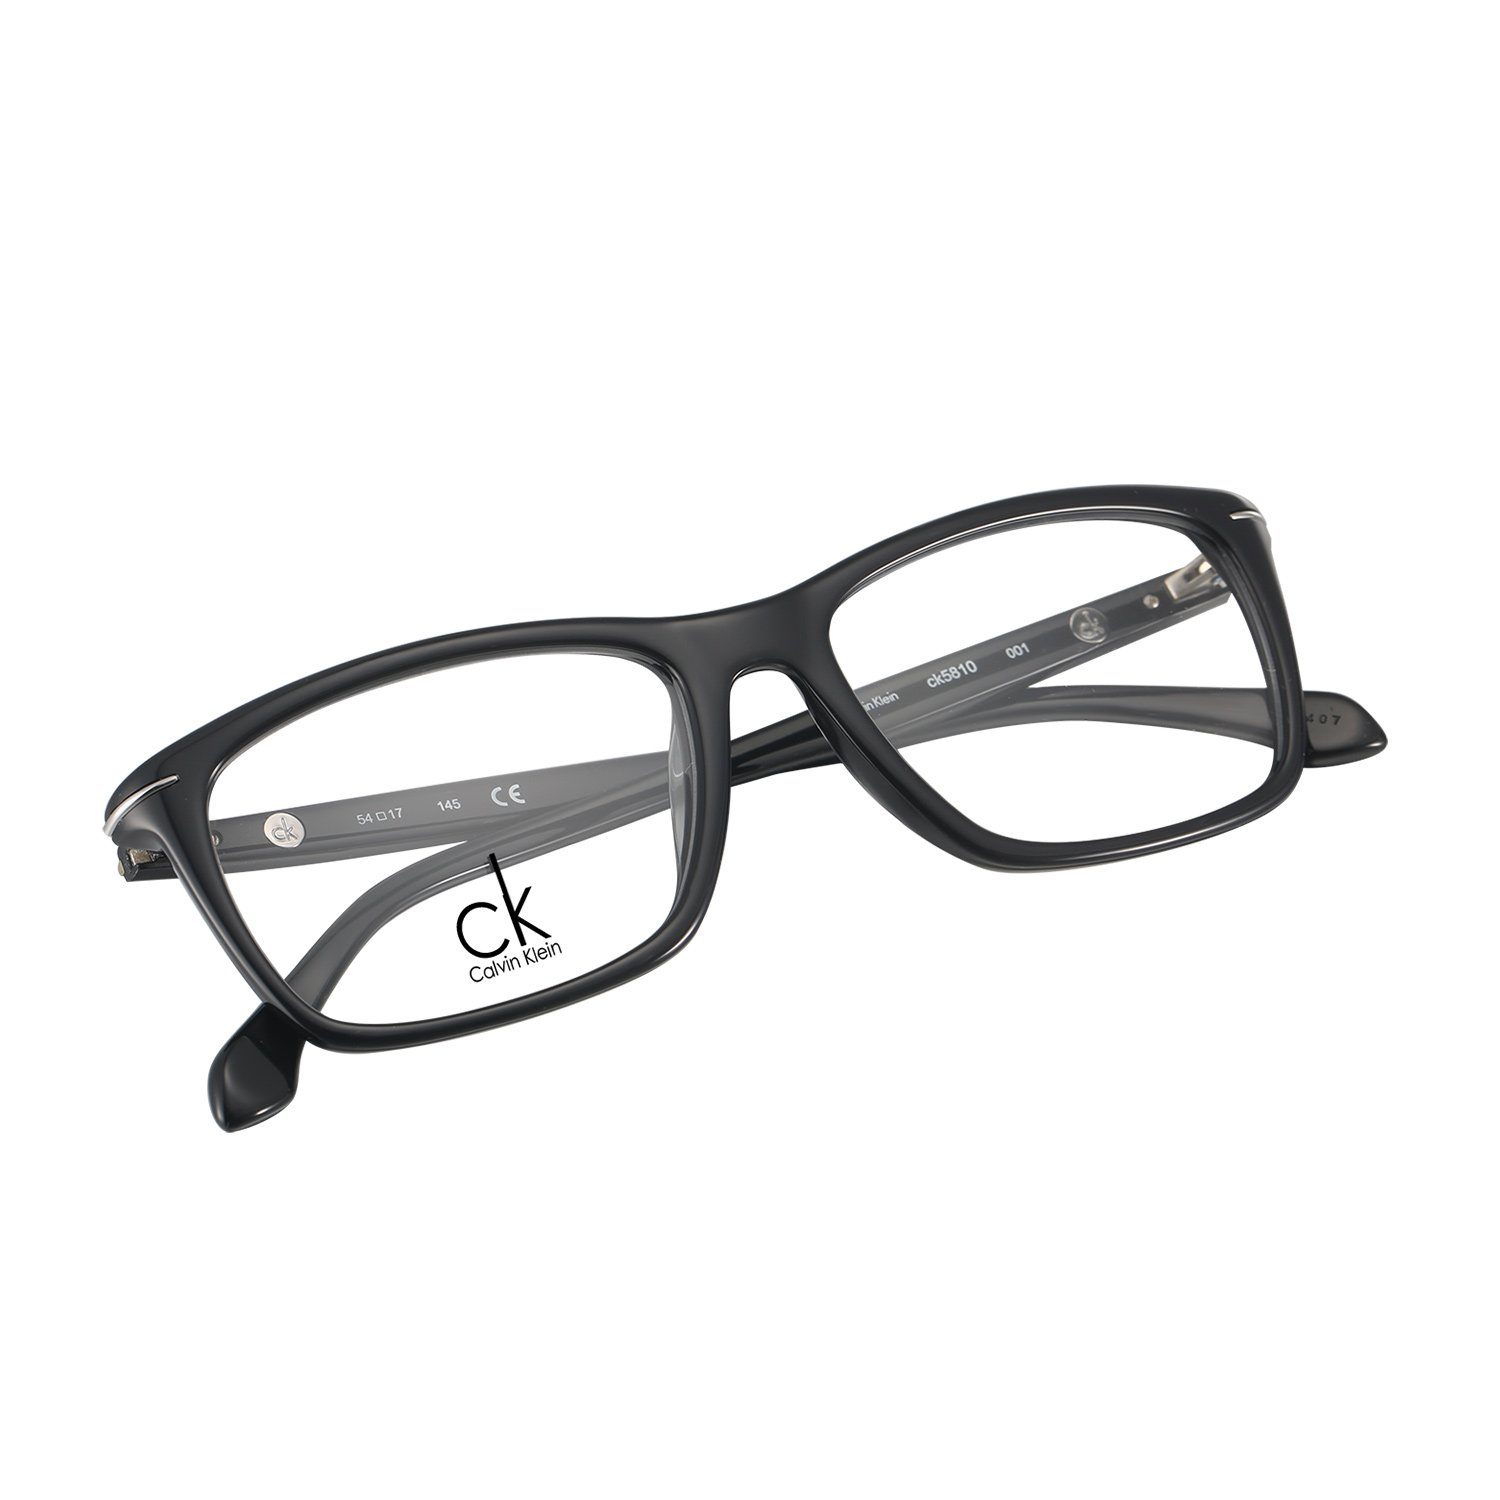 5d12f28cf71 CK Eyeglasses 5810 001  Amazon.co.uk  Clothing